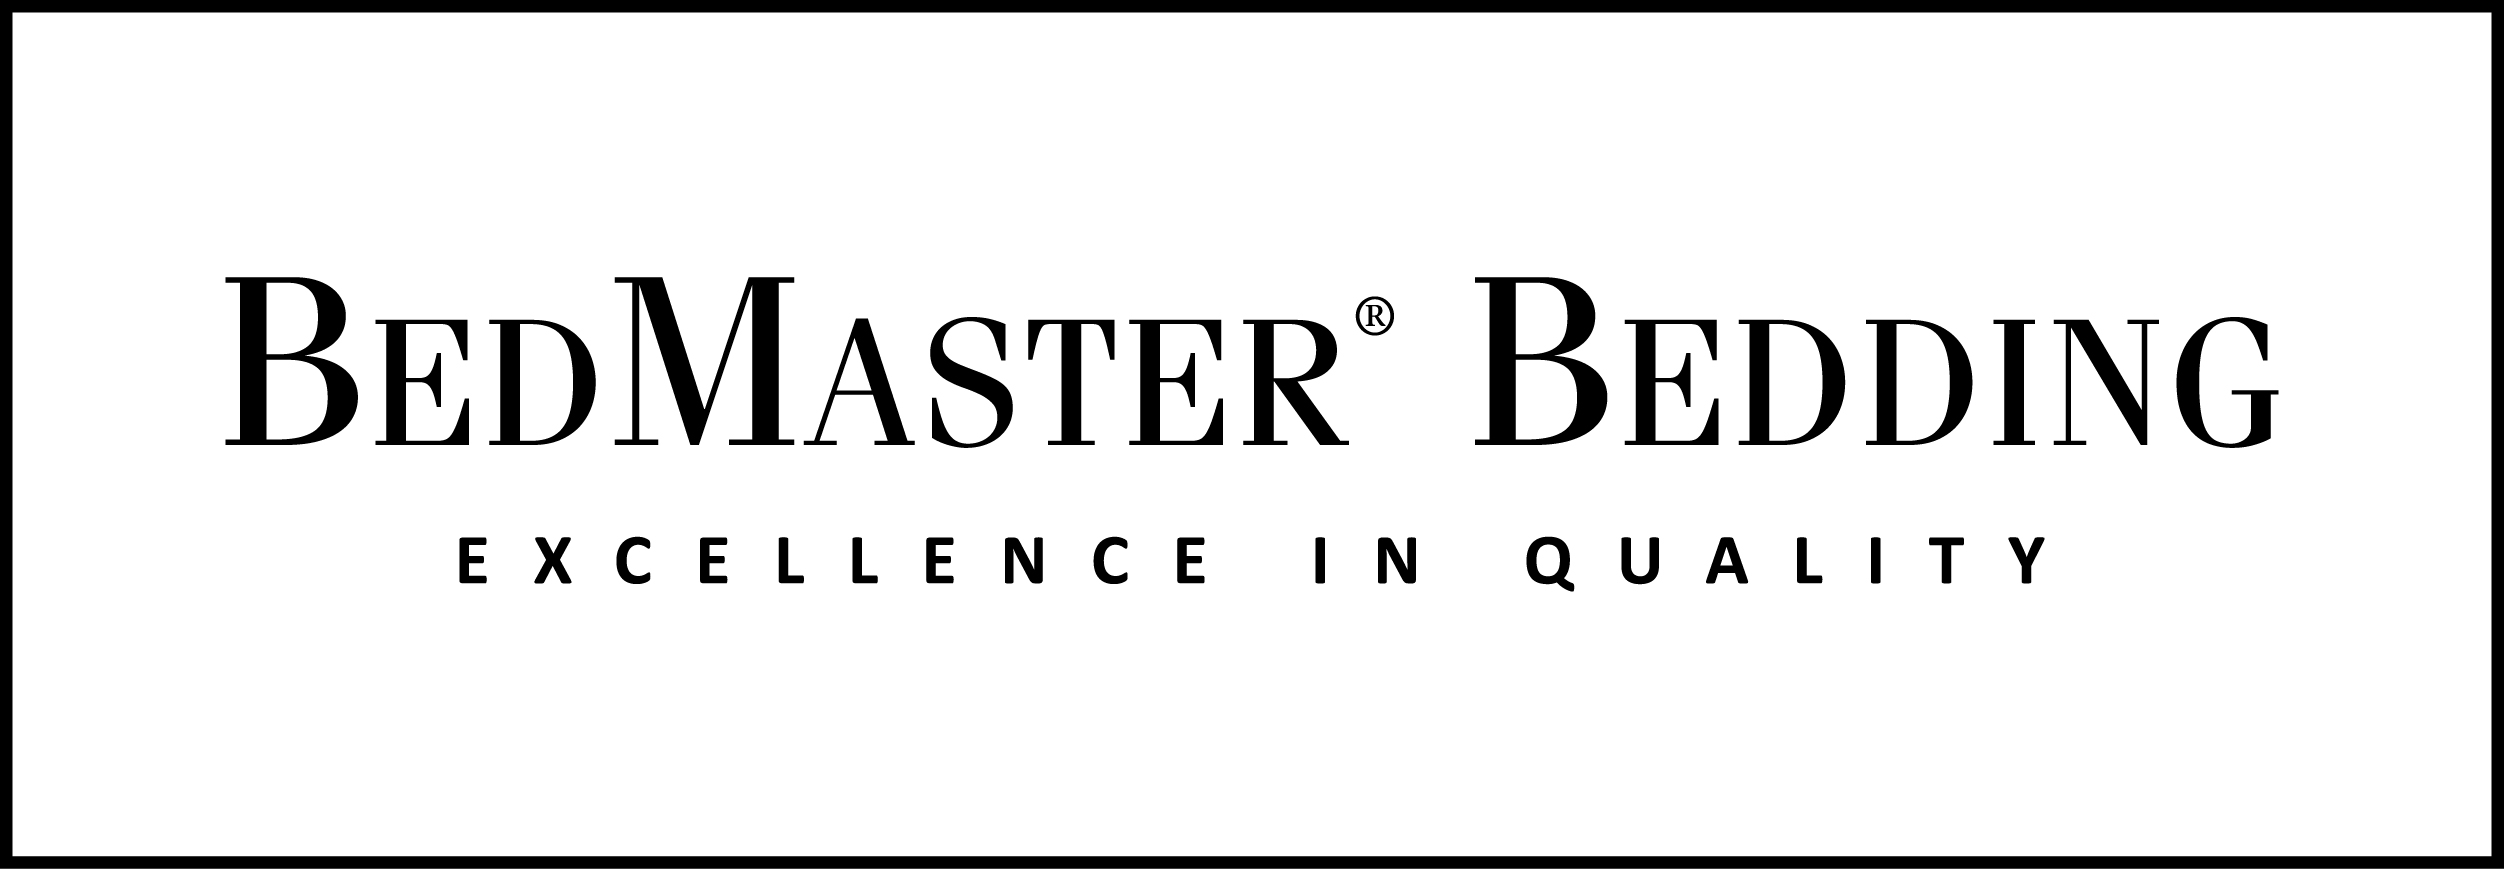 BedMaster Bedding